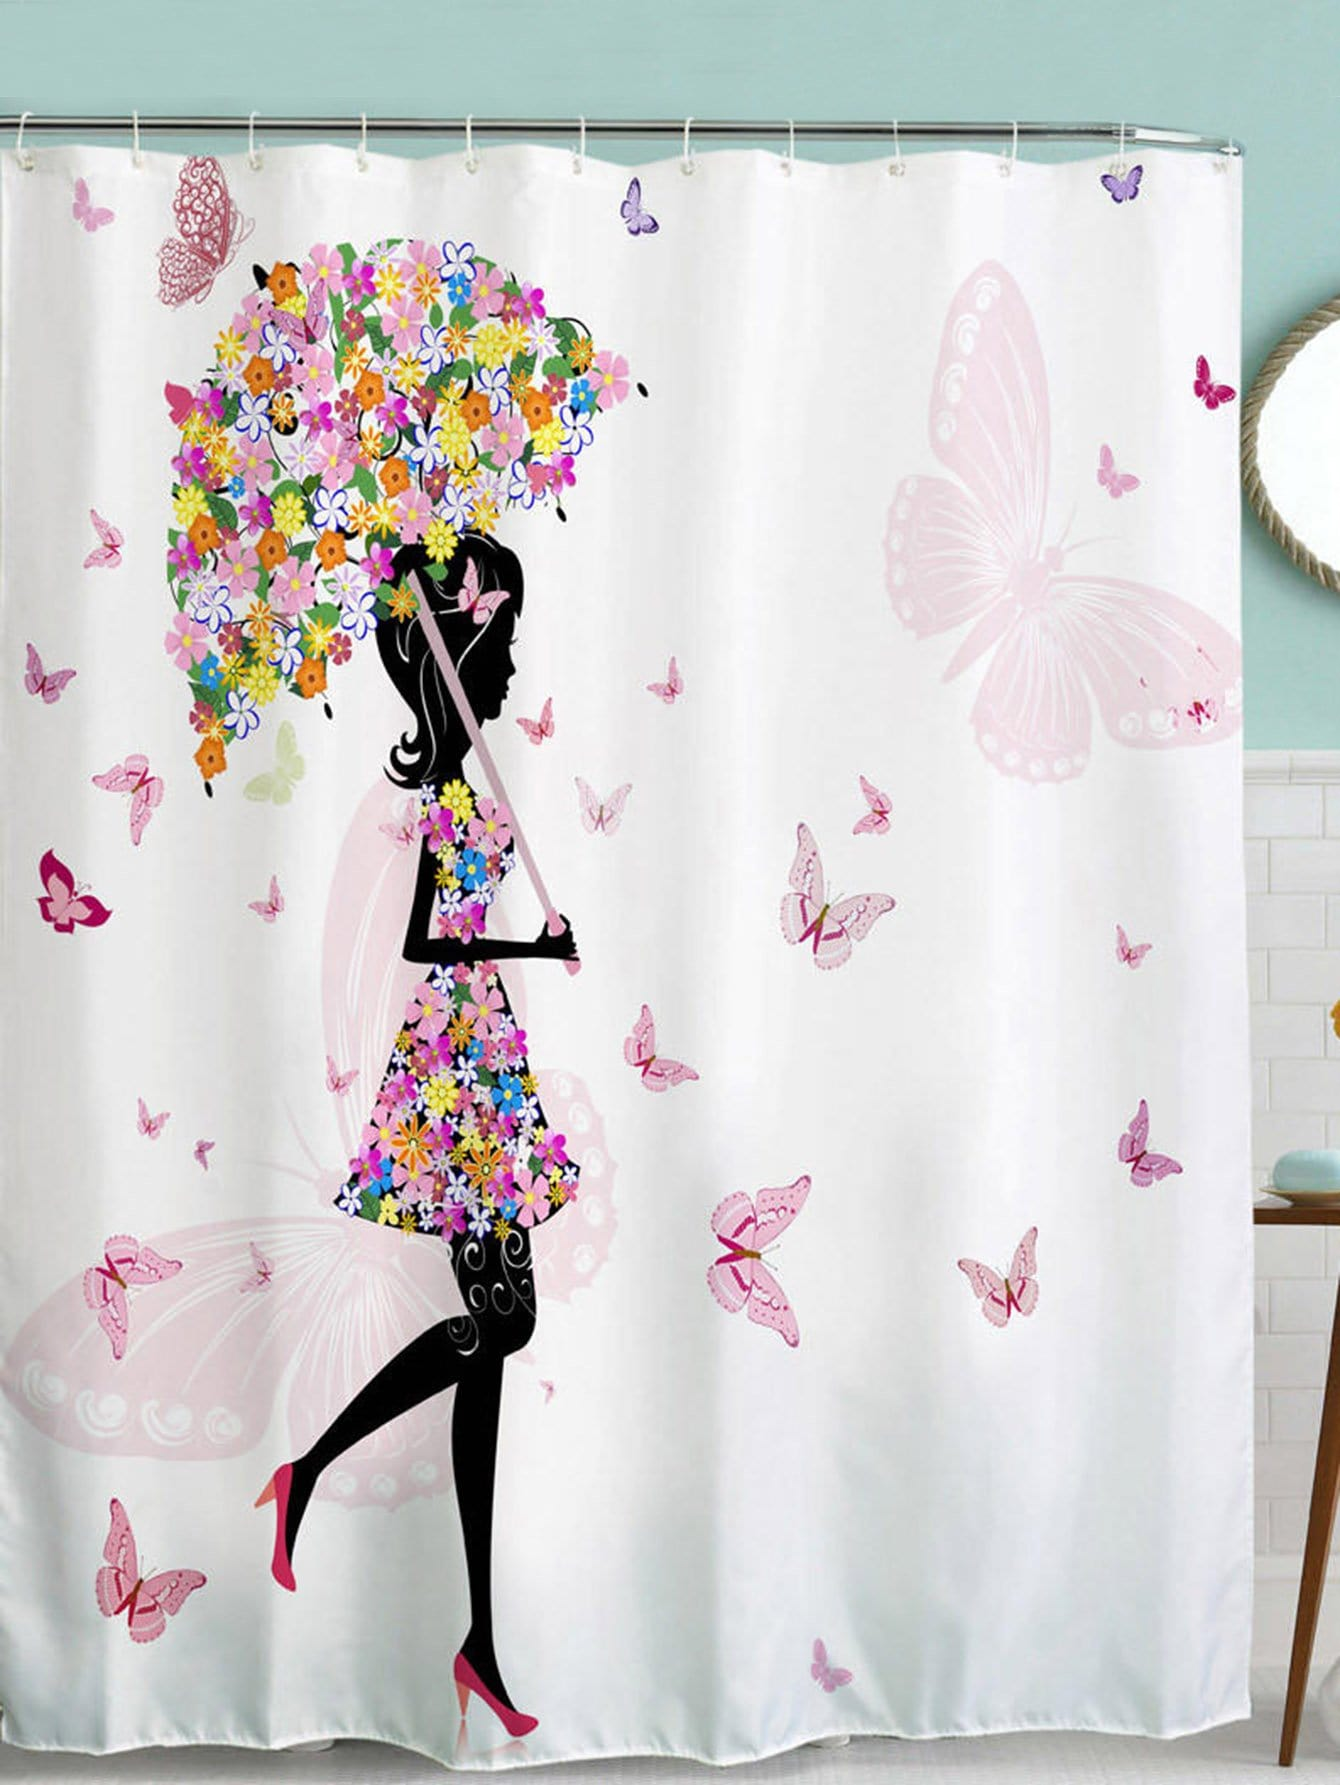 Girl Pattern Shower Curtain 1pc With Hook 12pcs afro hair lady immersed in her own world pattern shower curtain